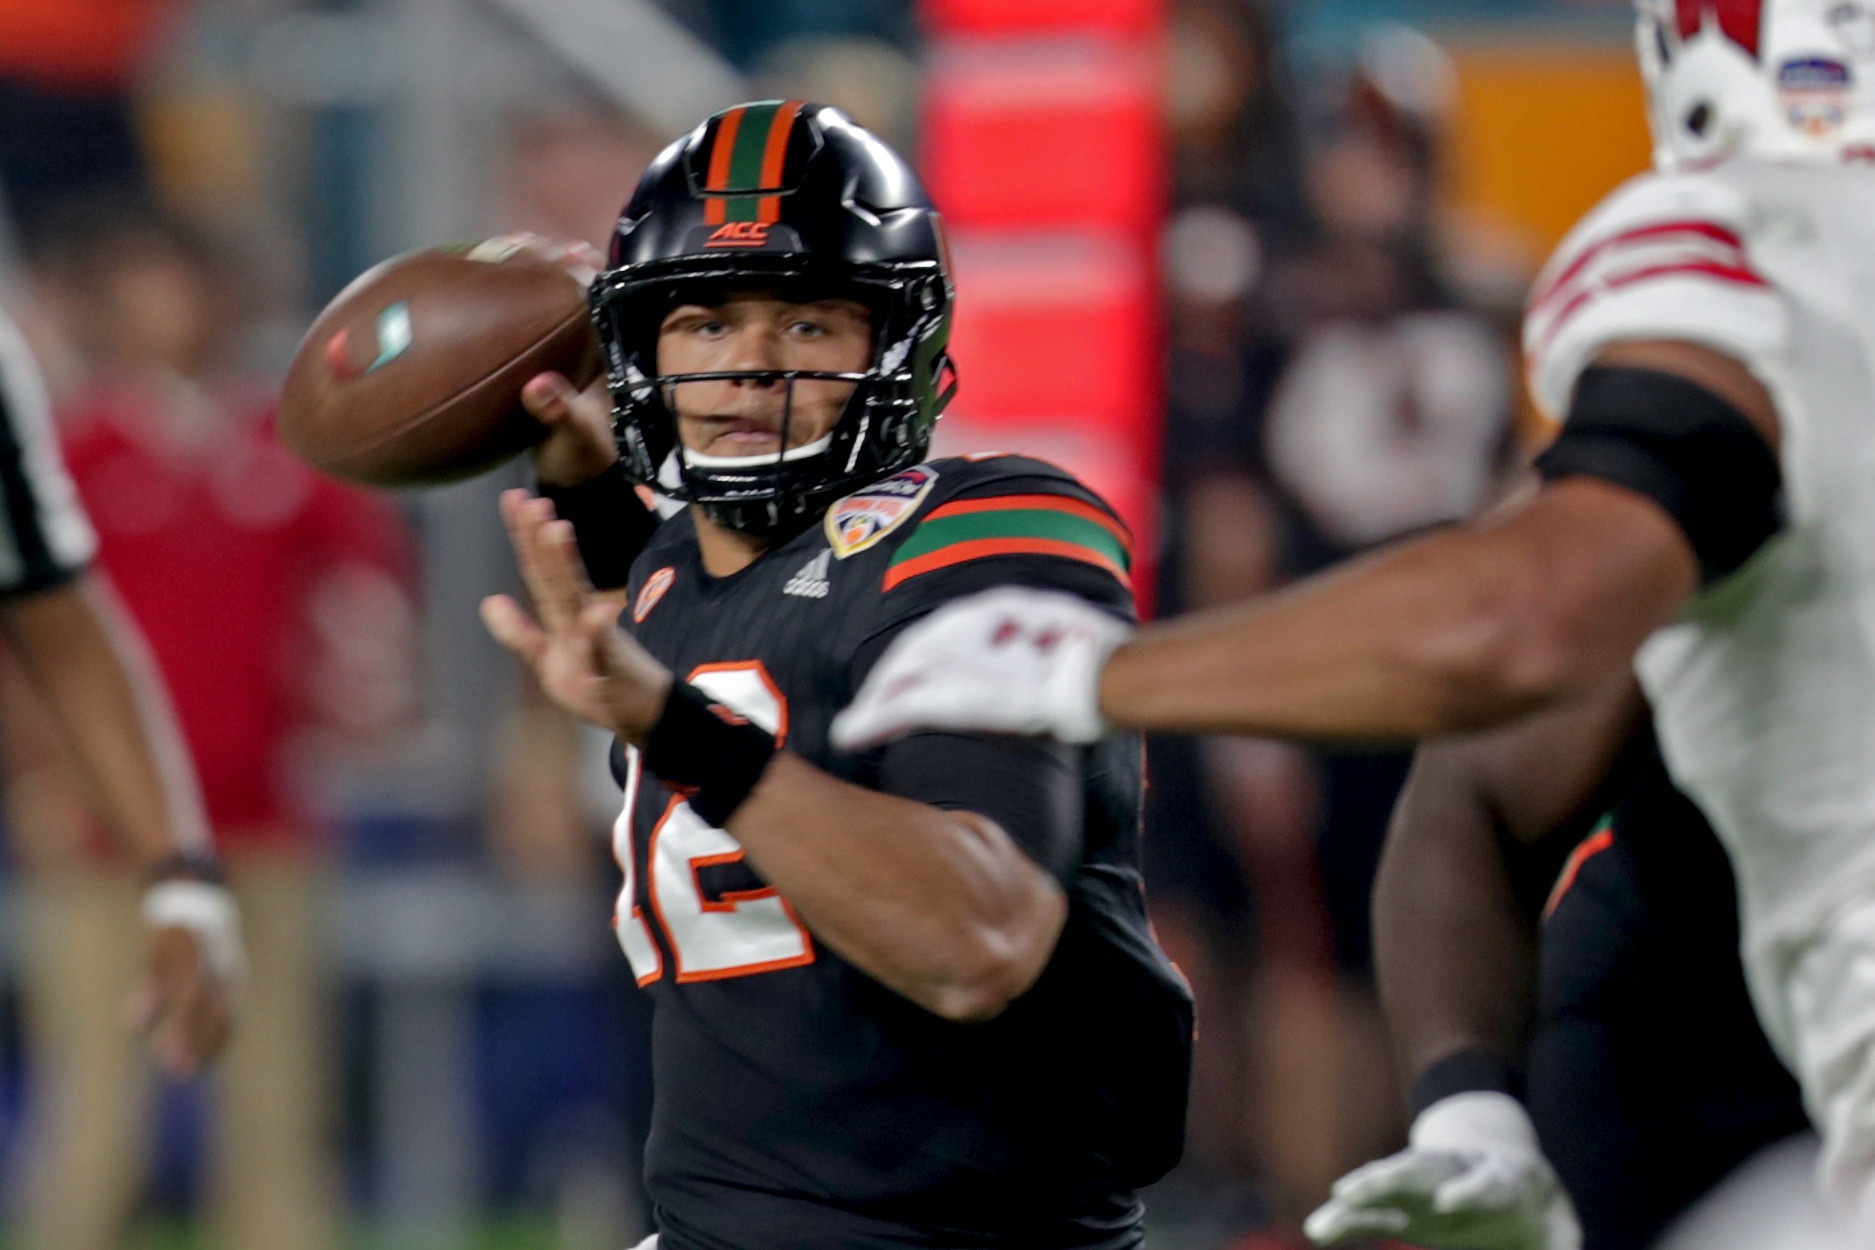 Sfl-15-hurricanes-to-watch-during-spring-football-at-um-20180319